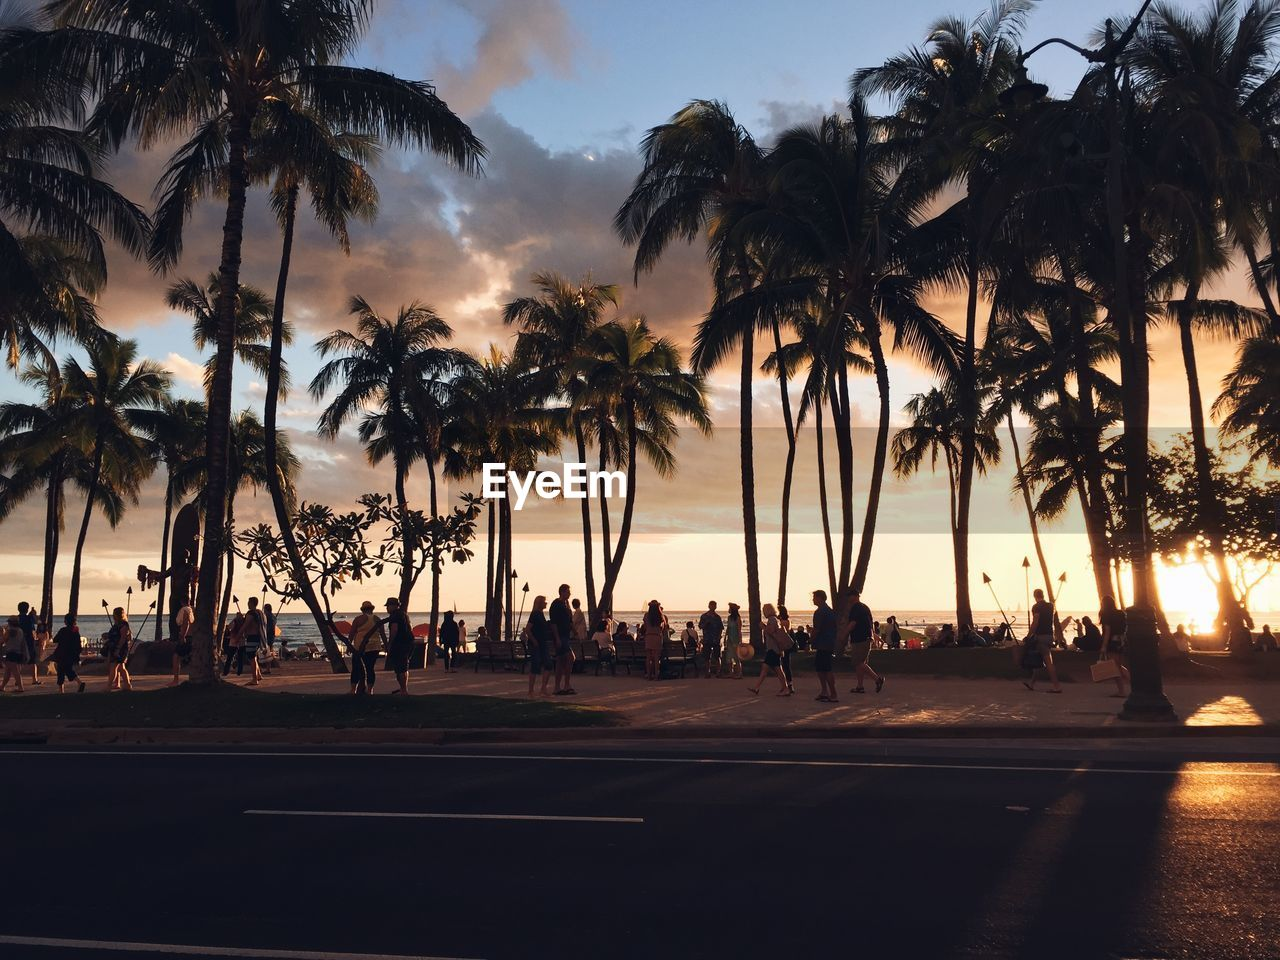 palm tree, tree, tropical climate, group of people, sky, plant, silhouette, nature, real people, sunset, large group of people, crowd, outdoors, lifestyles, men, beach, leisure activity, land, road, coconut palm tree